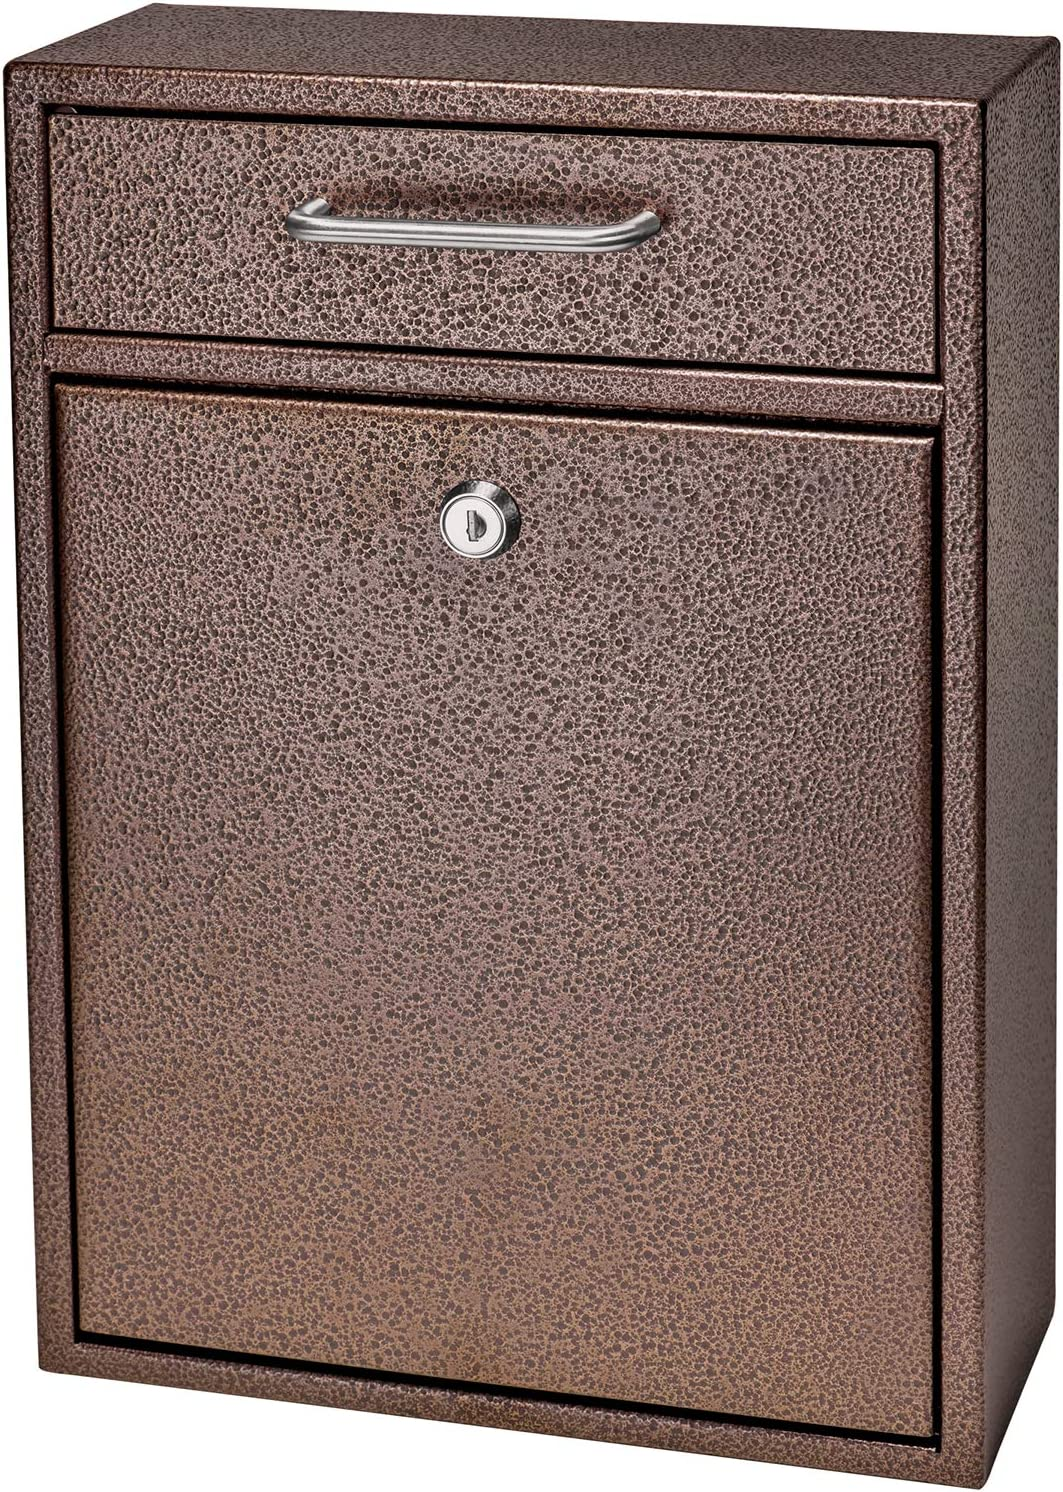 Mailbox Wall Mount Drop Box Locking Security Post Letters Door Steel Heavy Duty